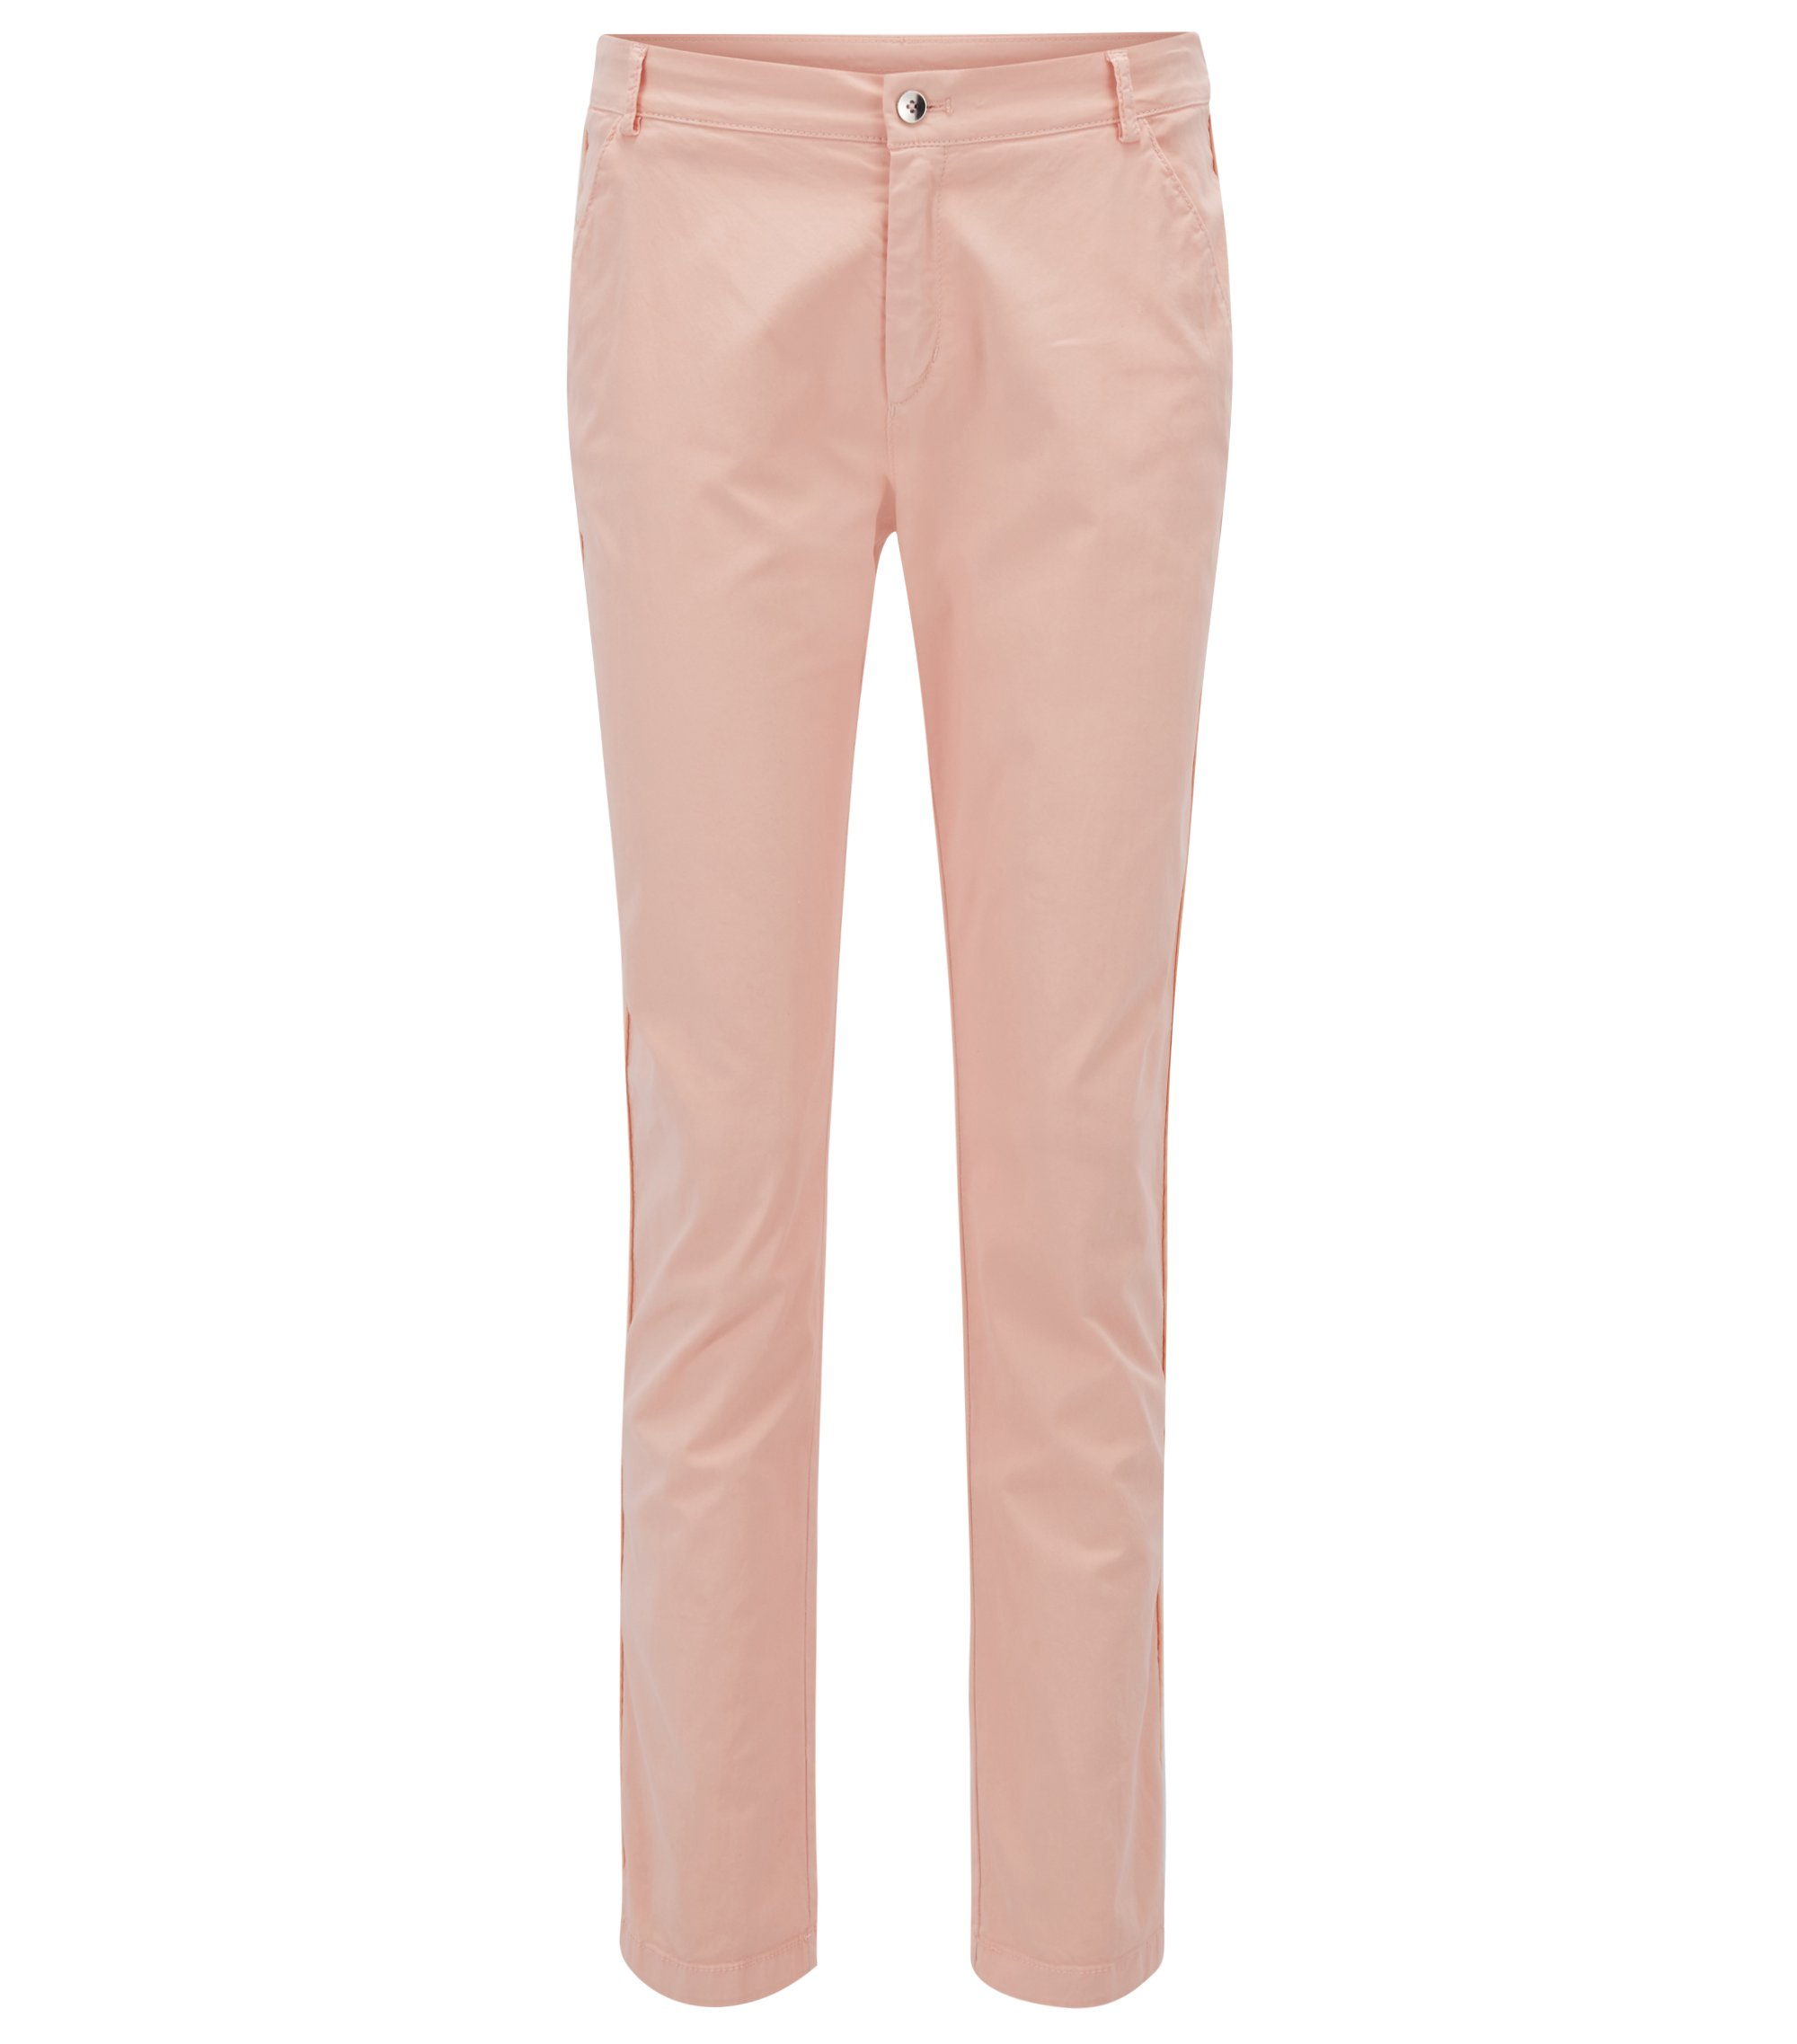 Pantalon chino Relaxed Fit en coton stretch, Rose clair